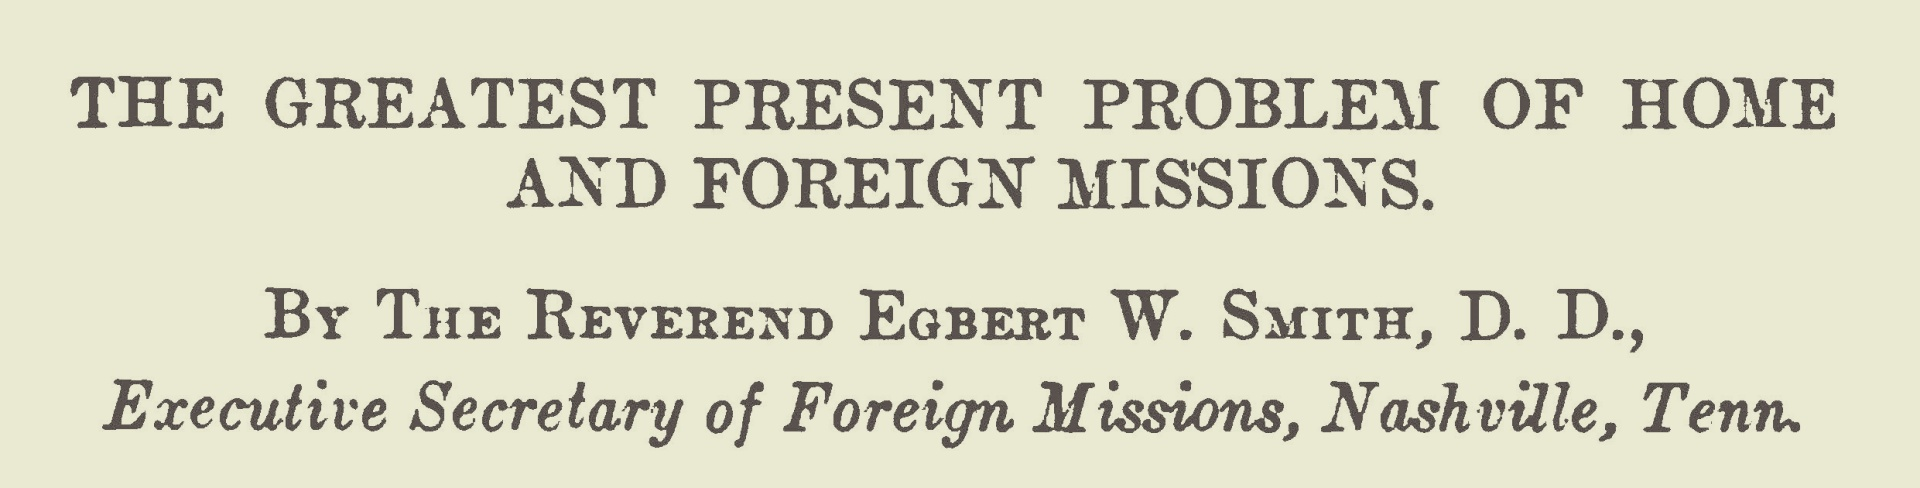 Smith, Egbert Watson, The Greatest Present Problem of Home and Foreign Missions Title Page.jpg